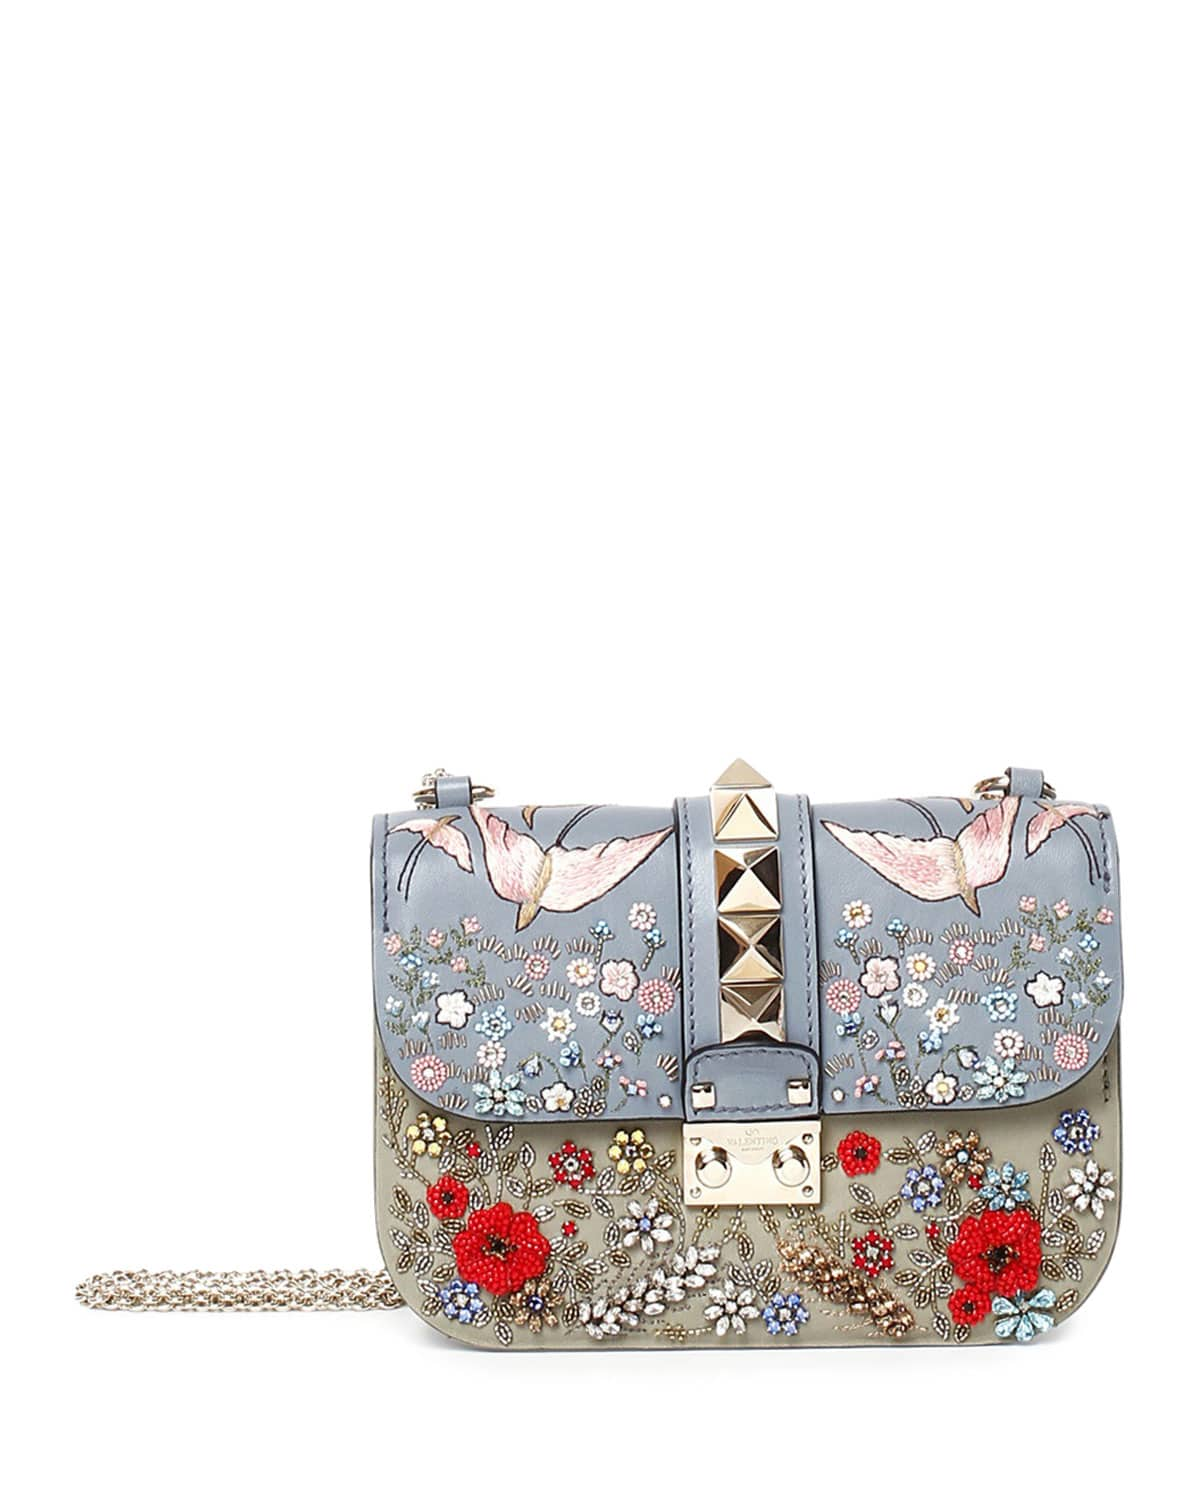 d3371776d70 Valentino Resort 2016 Bag Collection Featuring Superheroes | Spotted ...